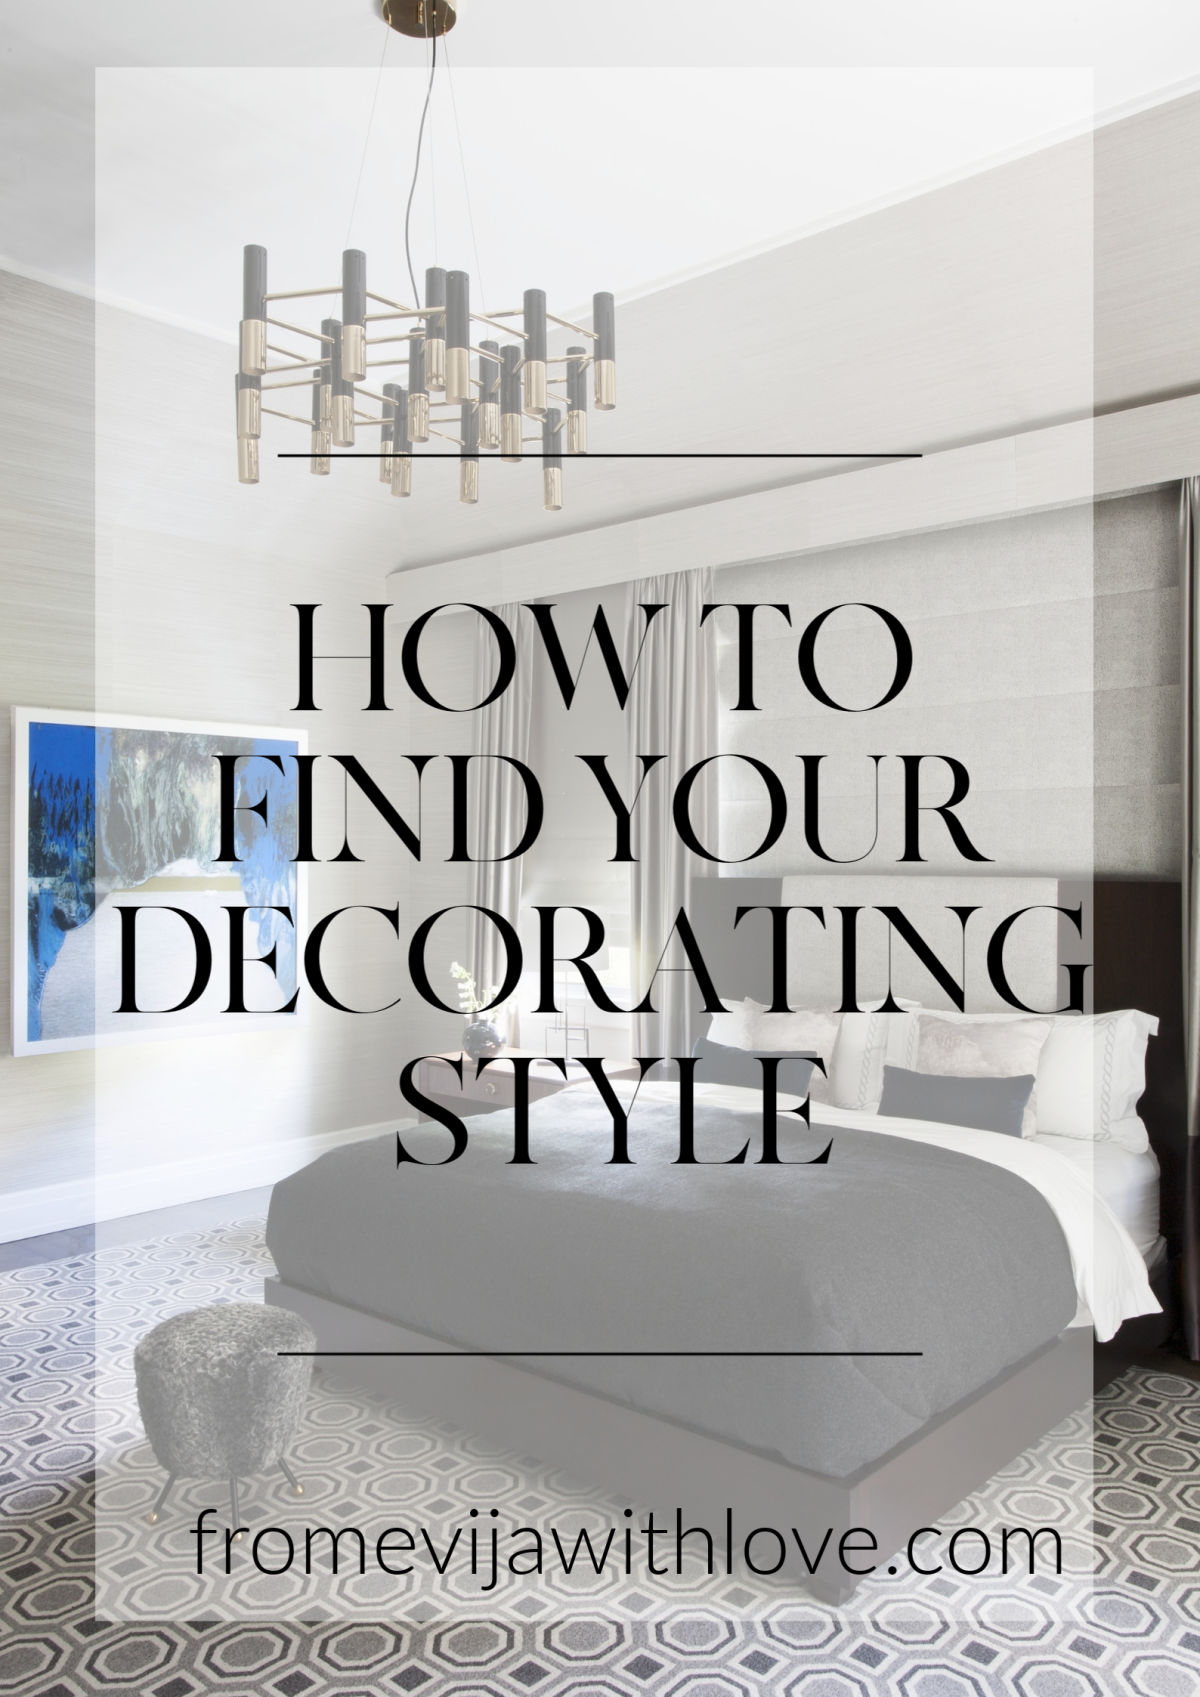 INTERIORS - How to Find Your Decorating Style - From Evija ...